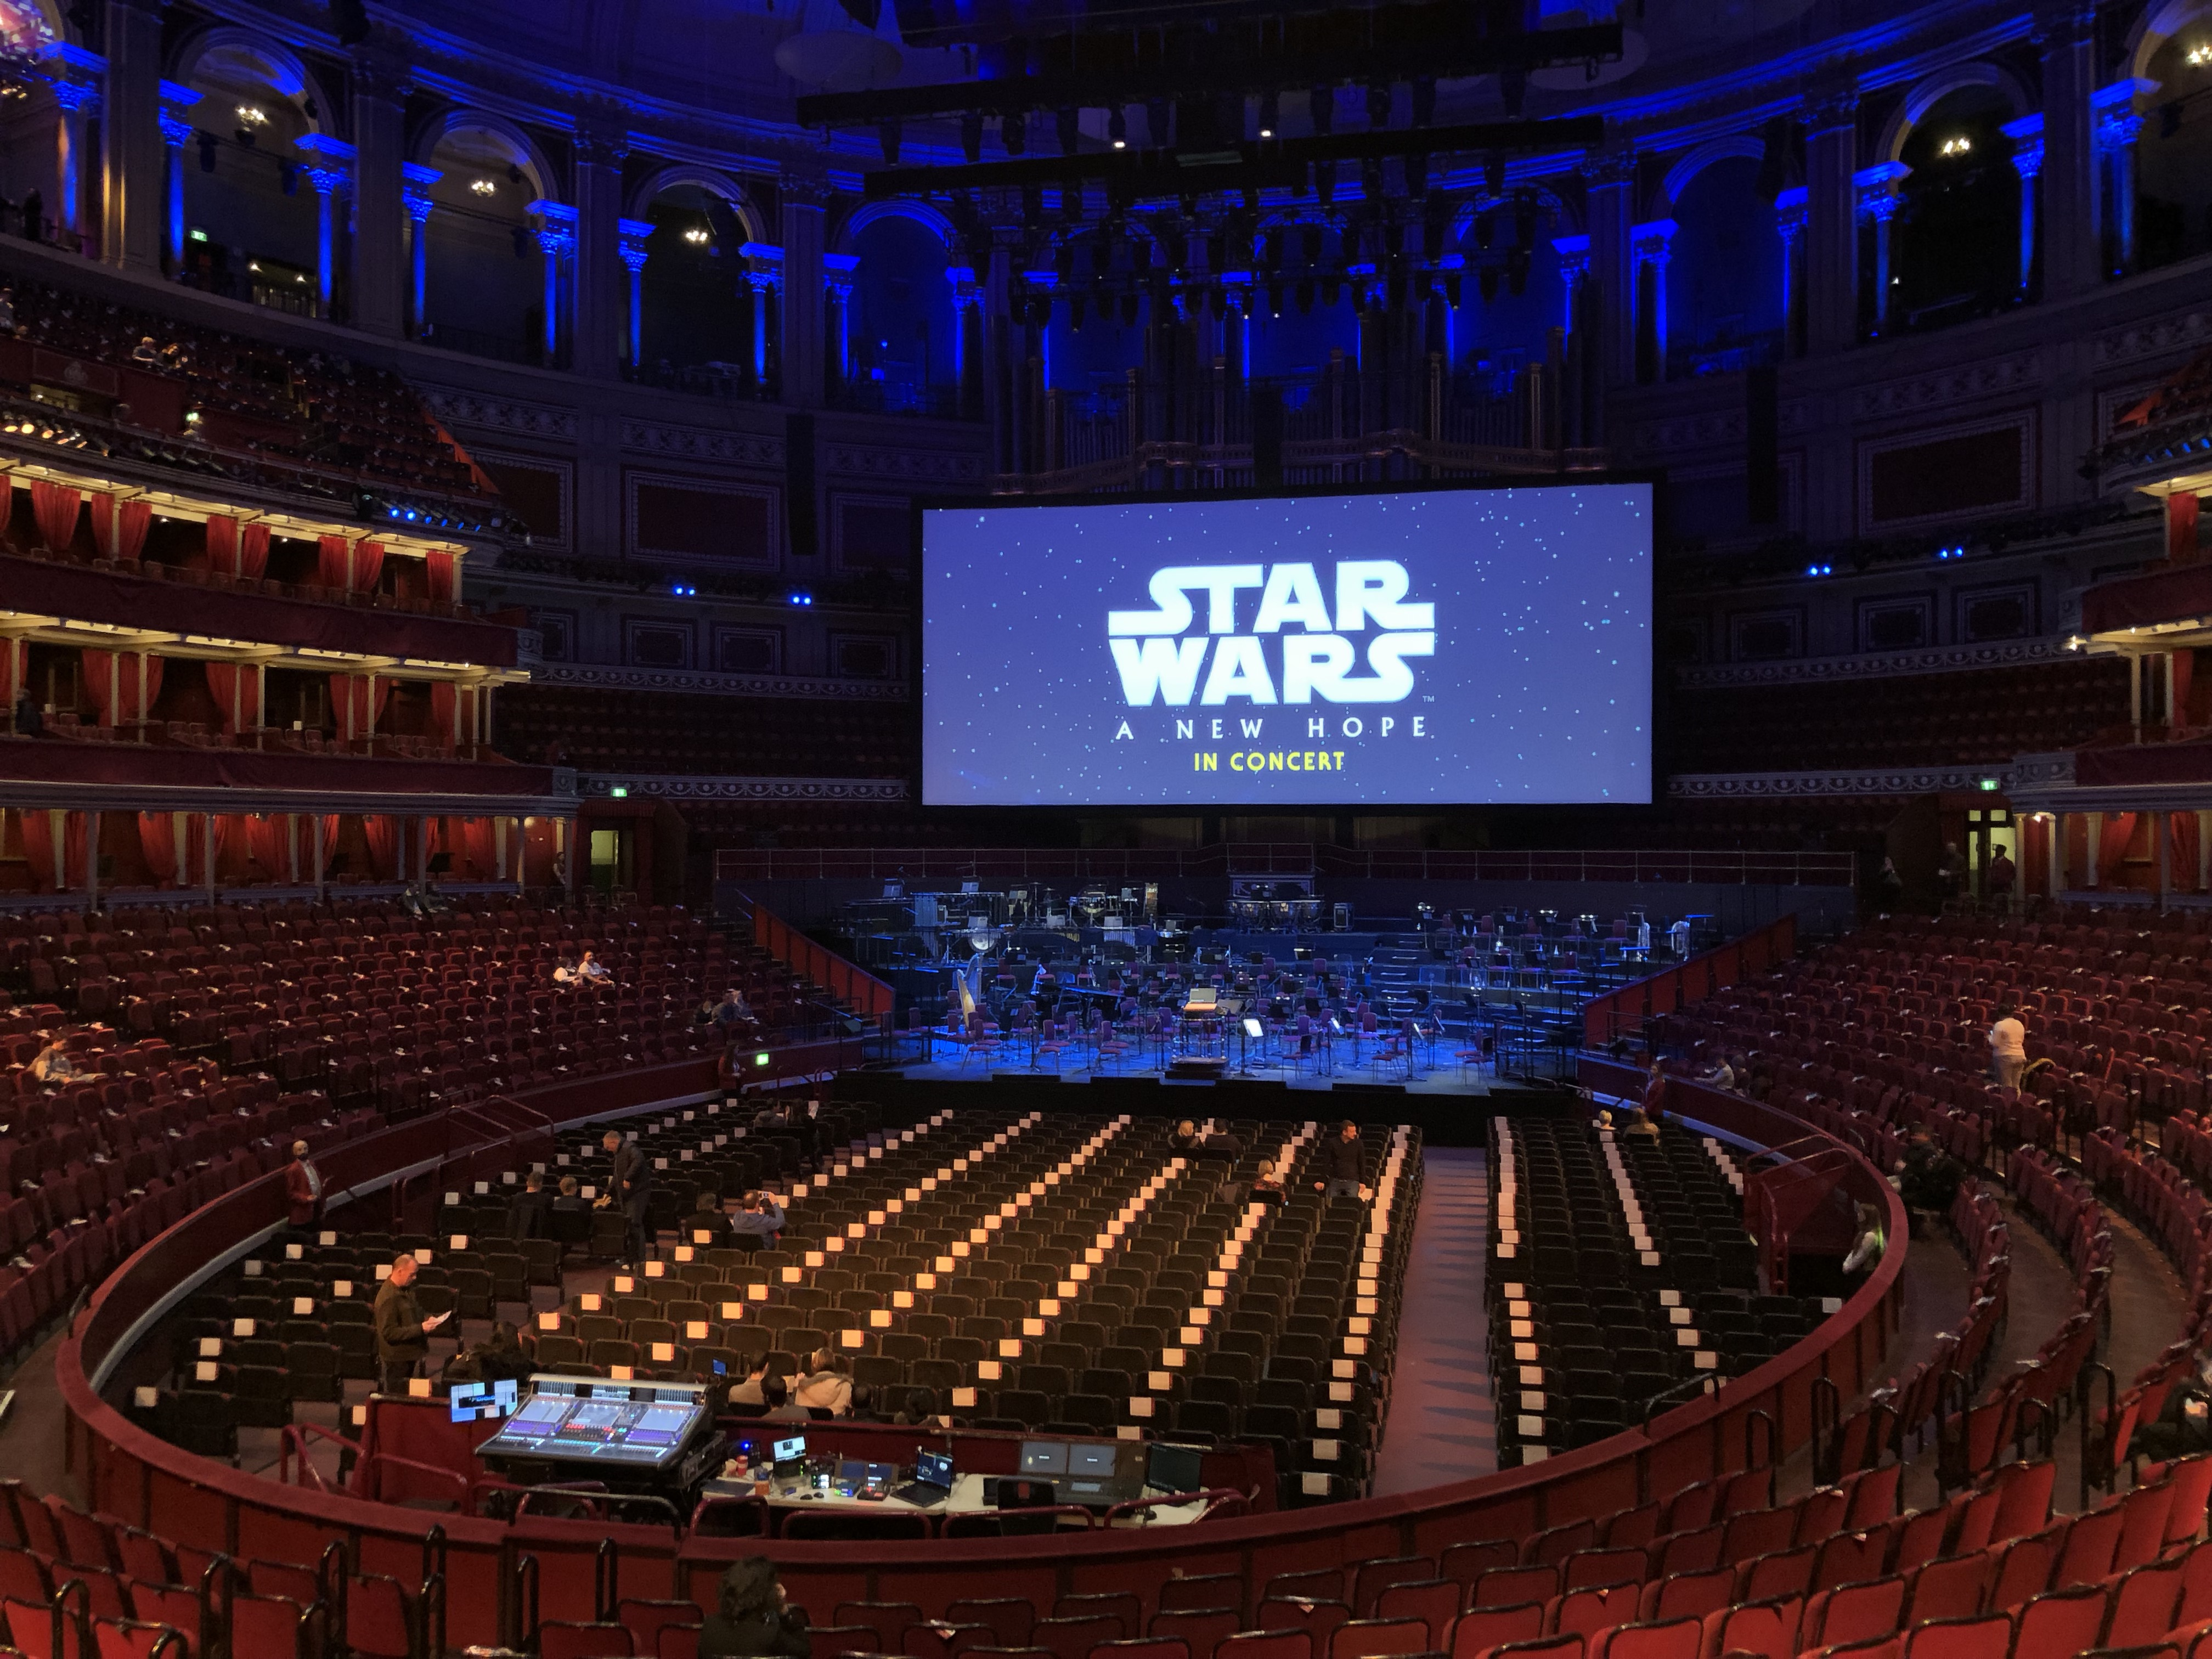 star-wars-a-new-hope-in-concert